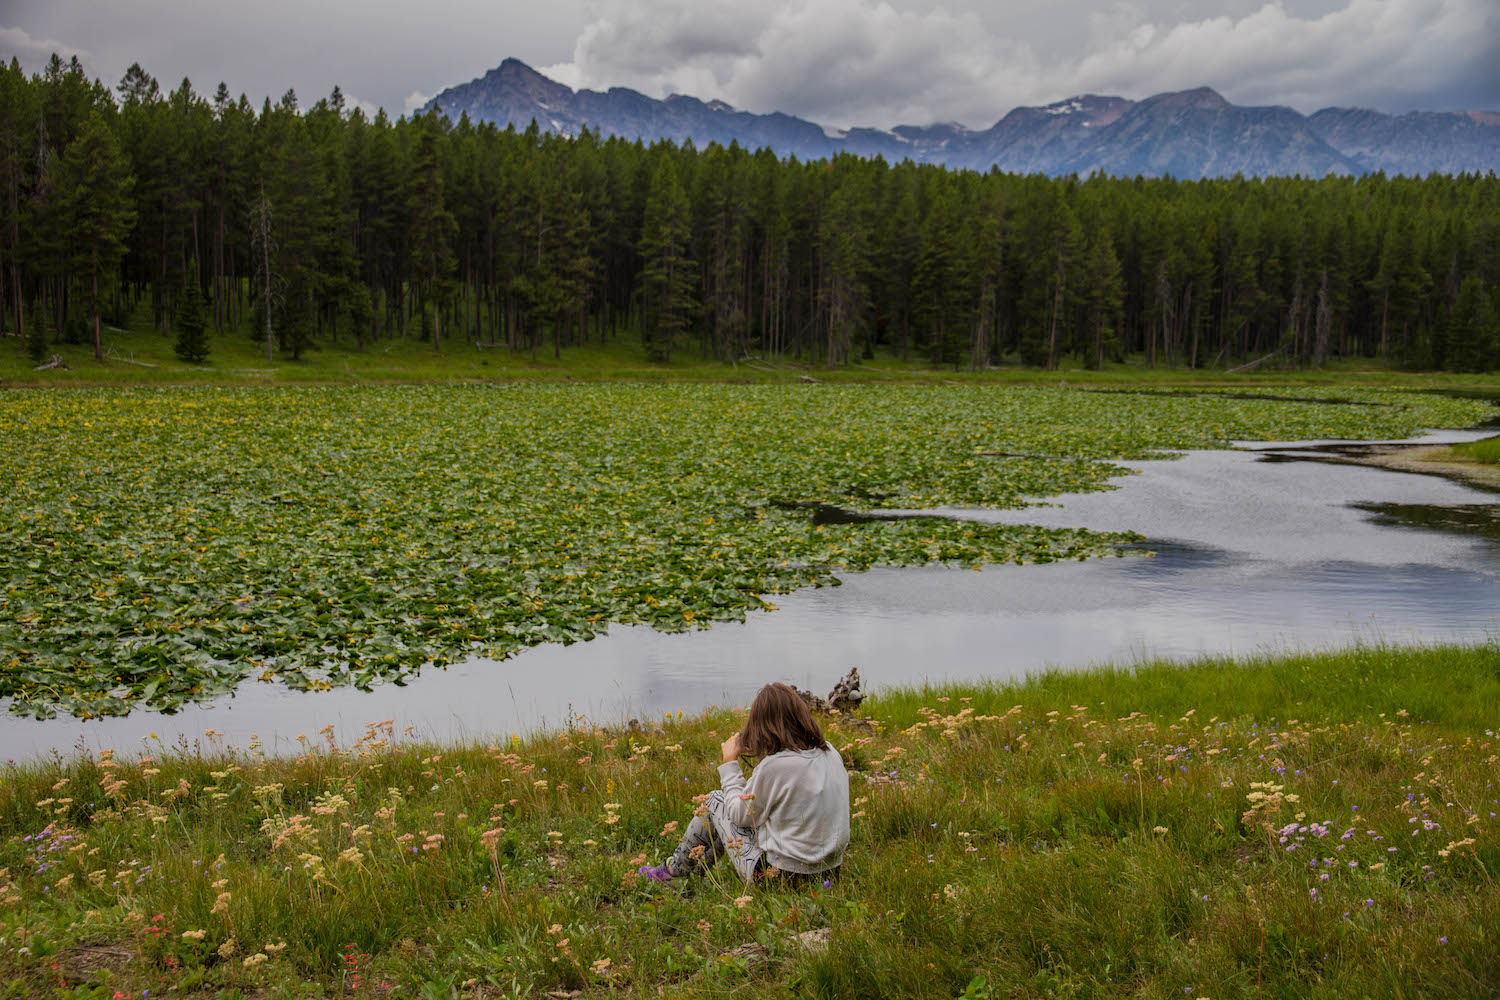 We sat in the tall grass and wildflowers to soak in the beauty of the pond and mountains around us.